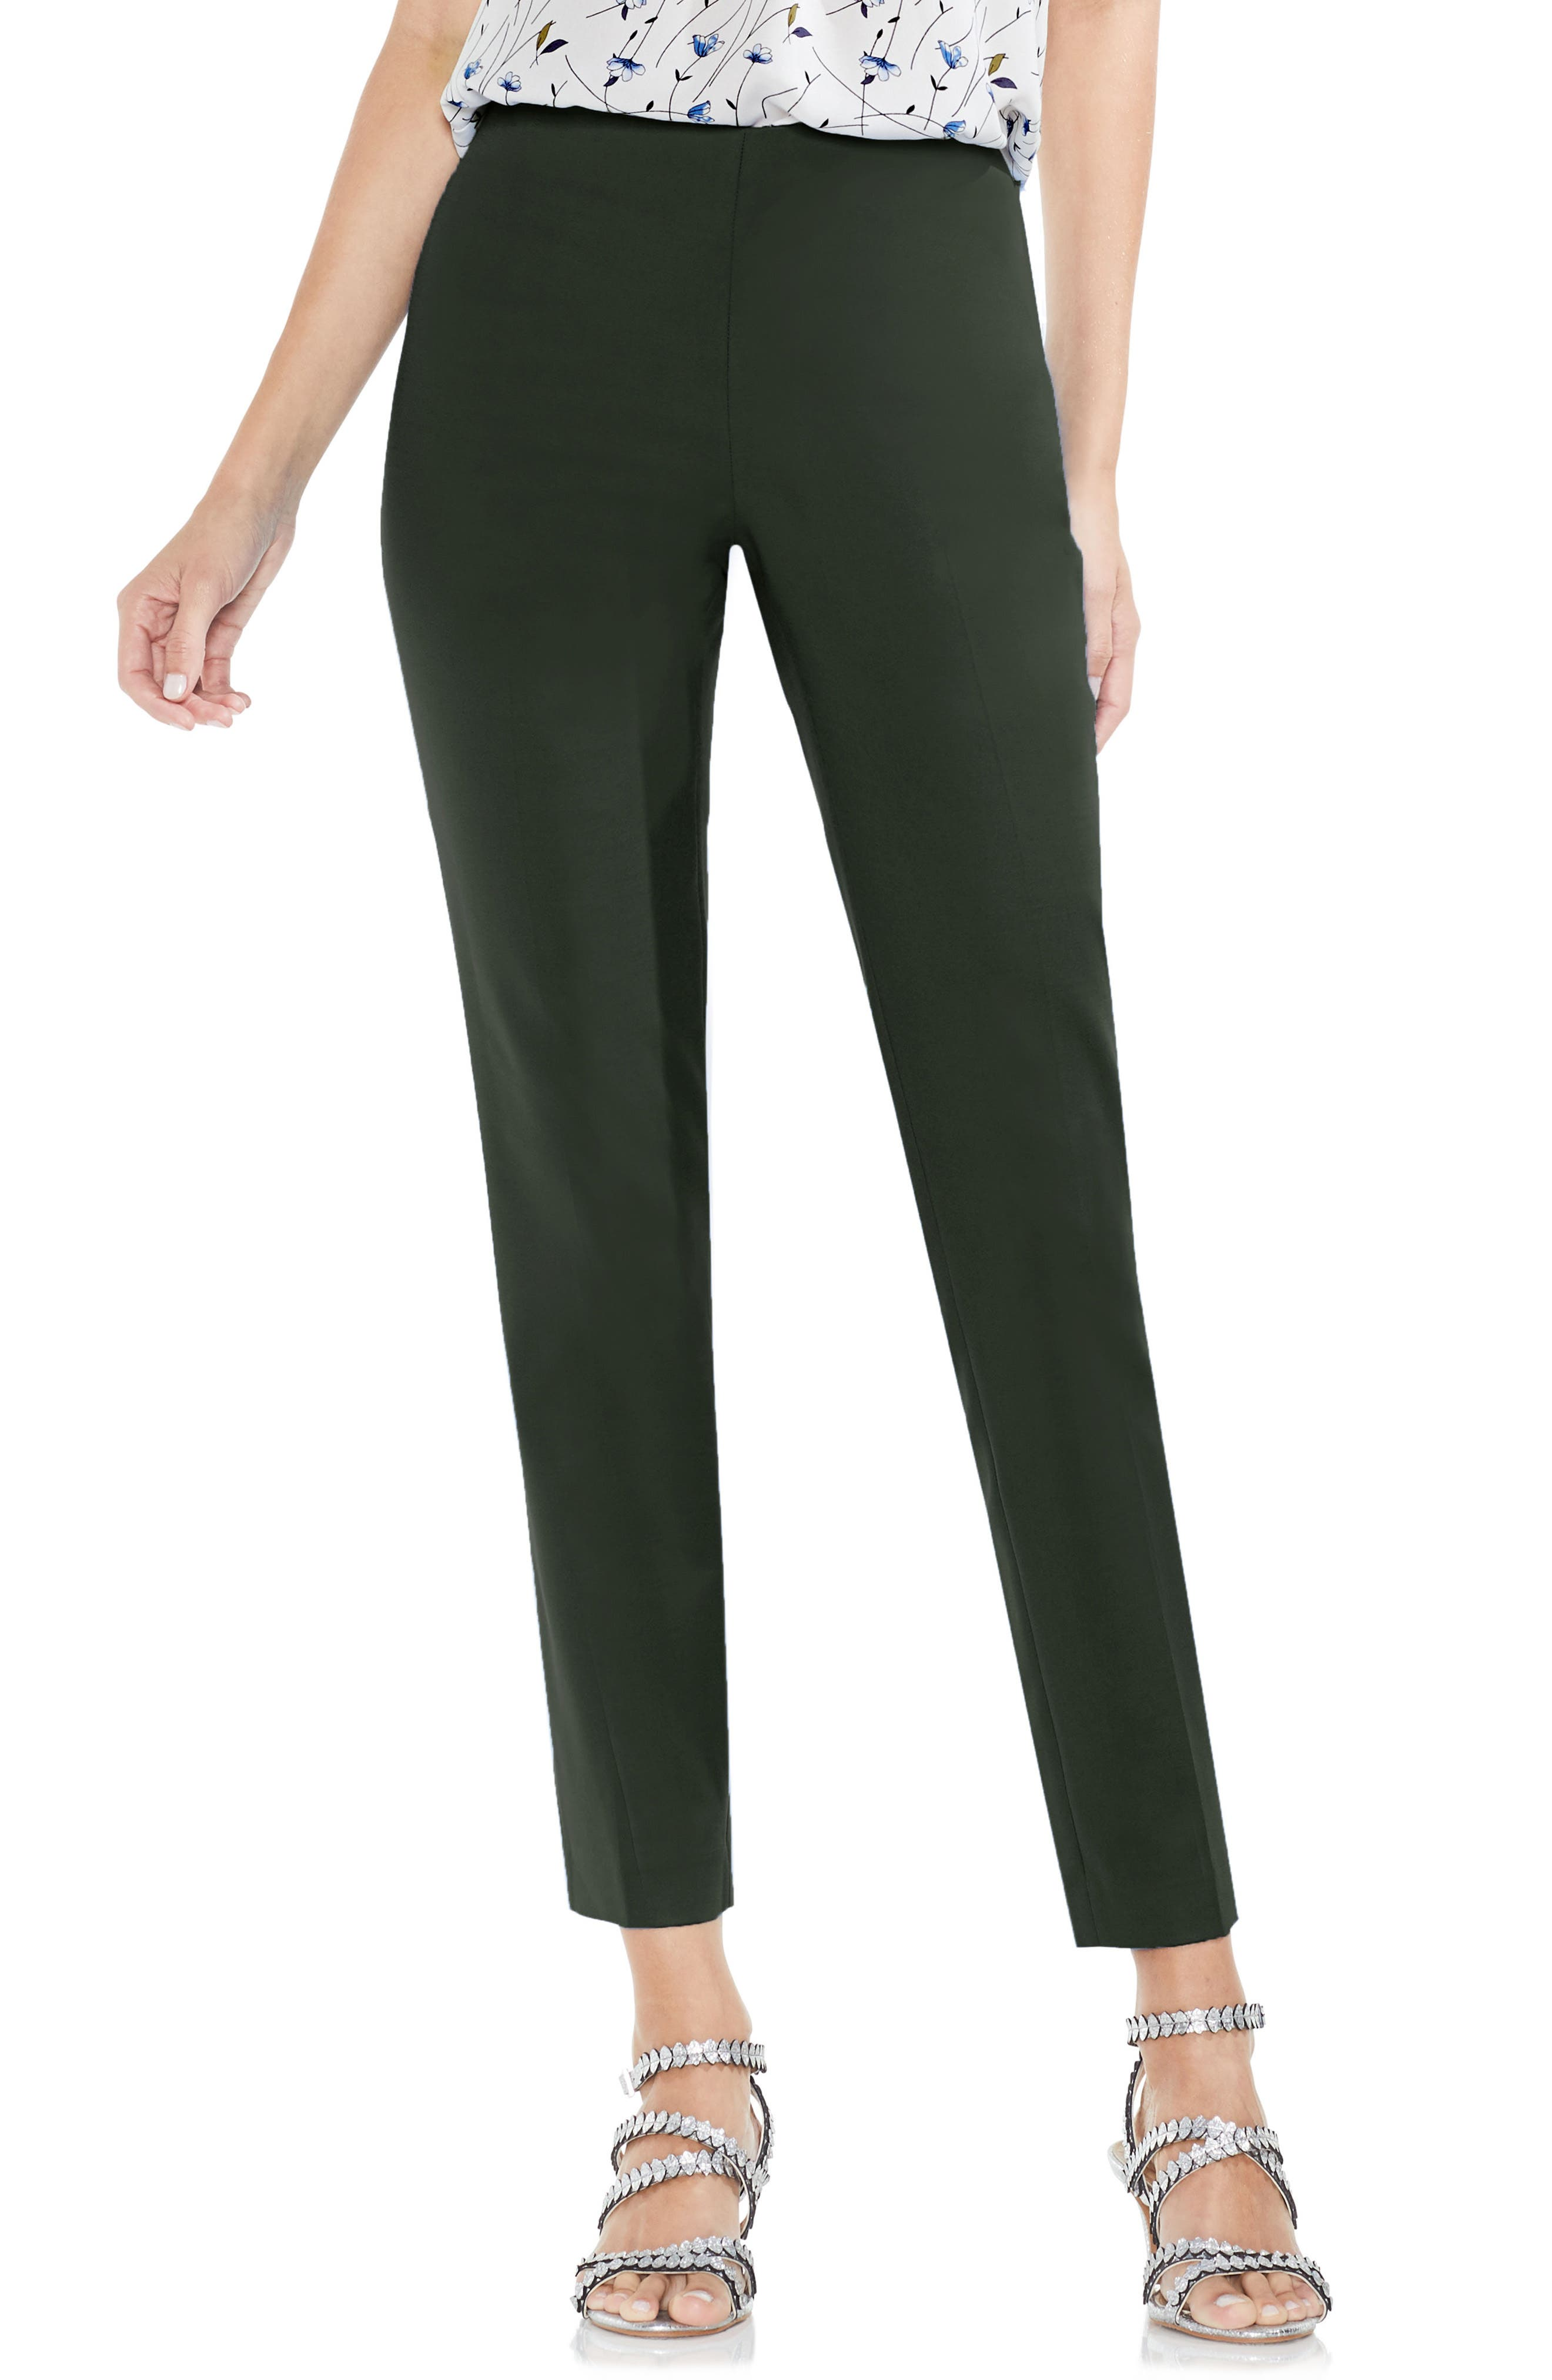 Main Image - Vince Camuto Side Zip Double Weave Pants (Regular & Petite)